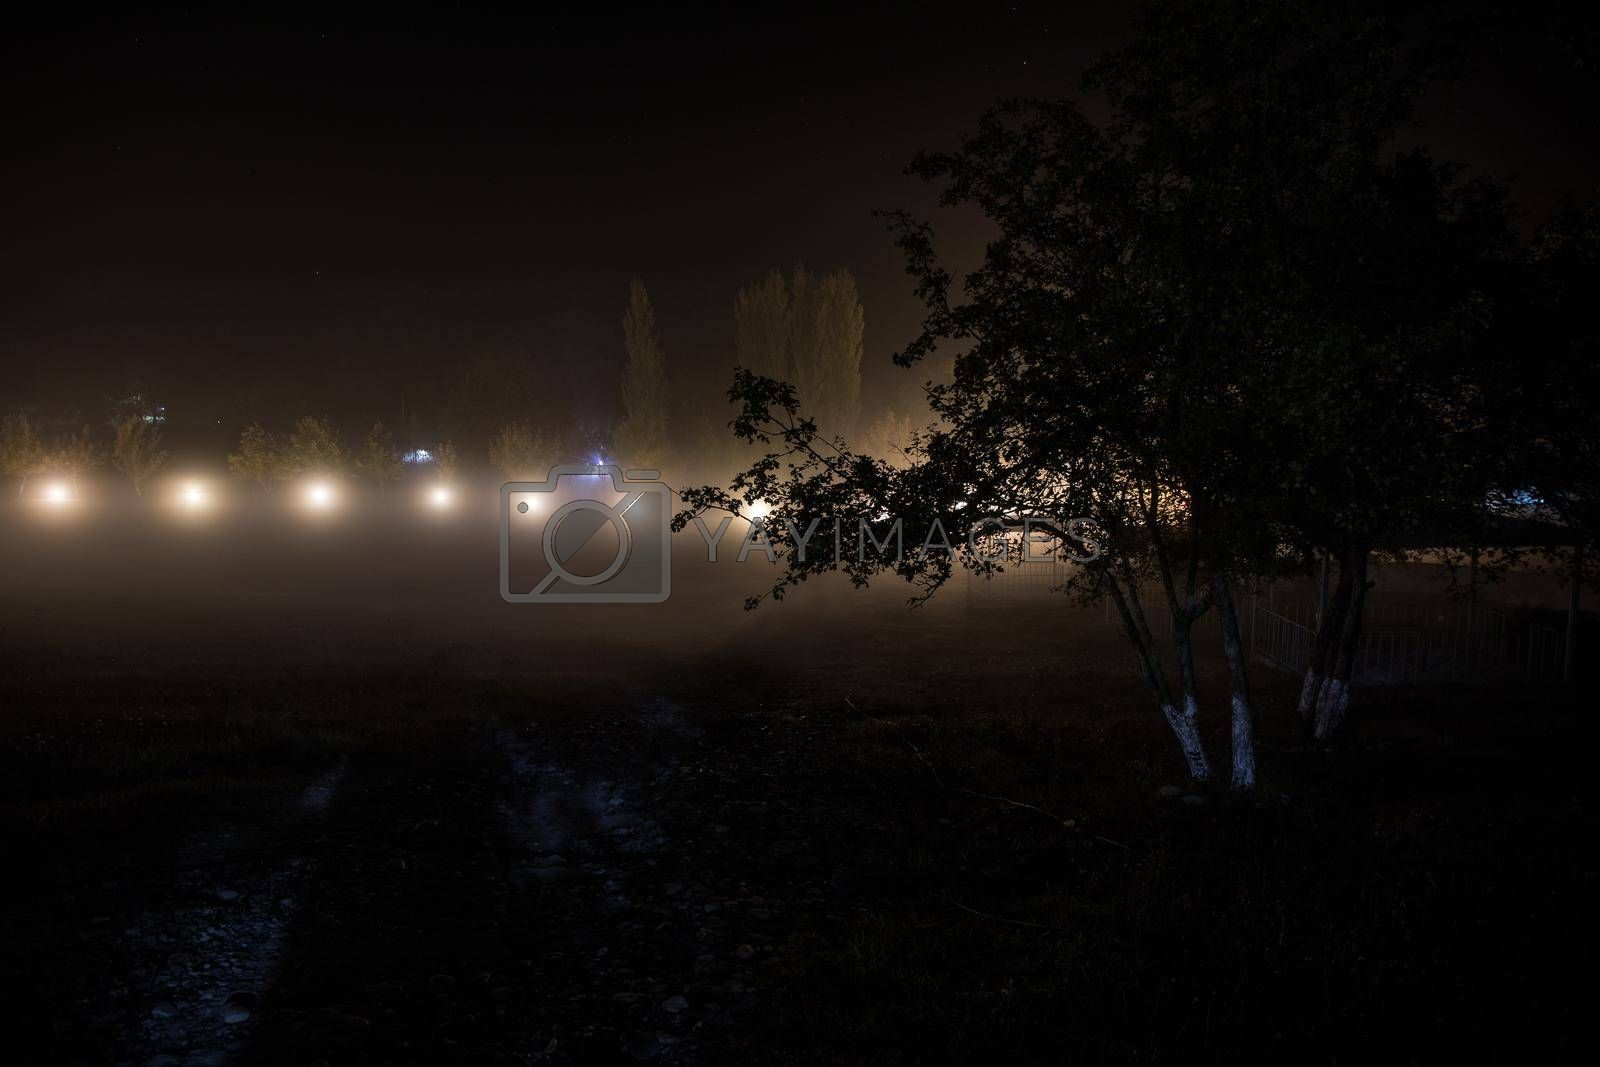 Trees and street lamps on a quiet foggy night. Foggy misty evening lamps in empty road at forest.